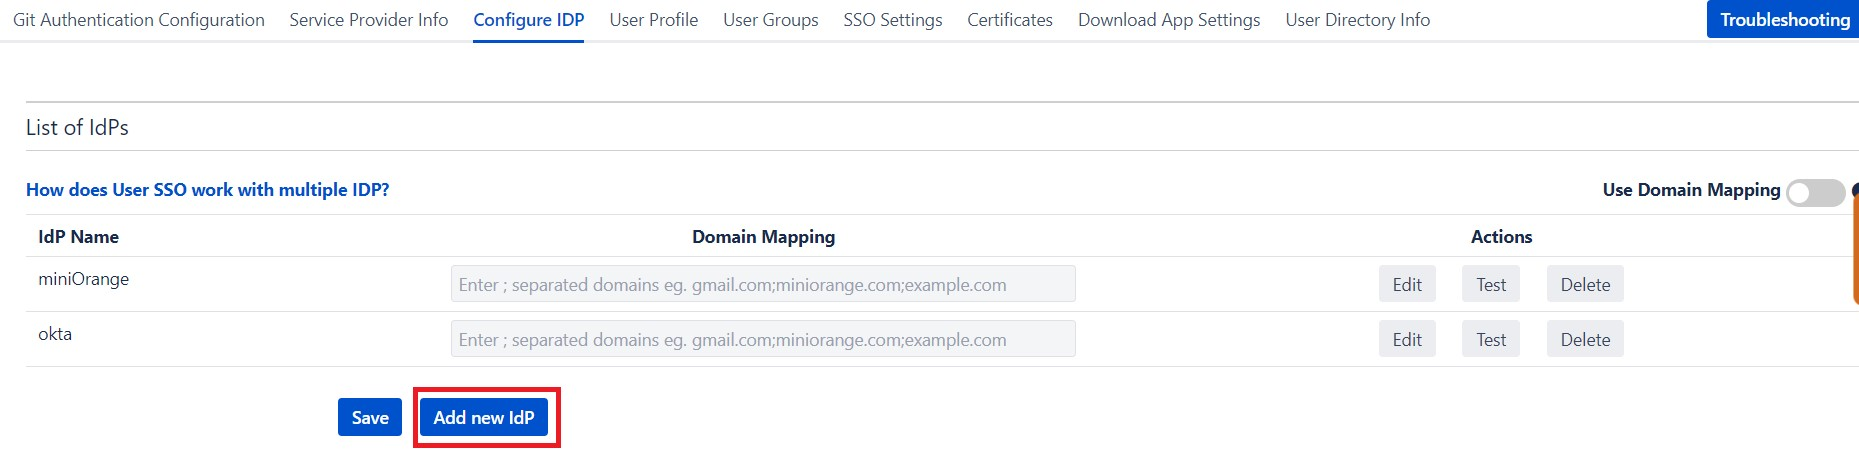 SAML Single Sign On (SSO) into Bitbucket Service Provider, Add New IDP